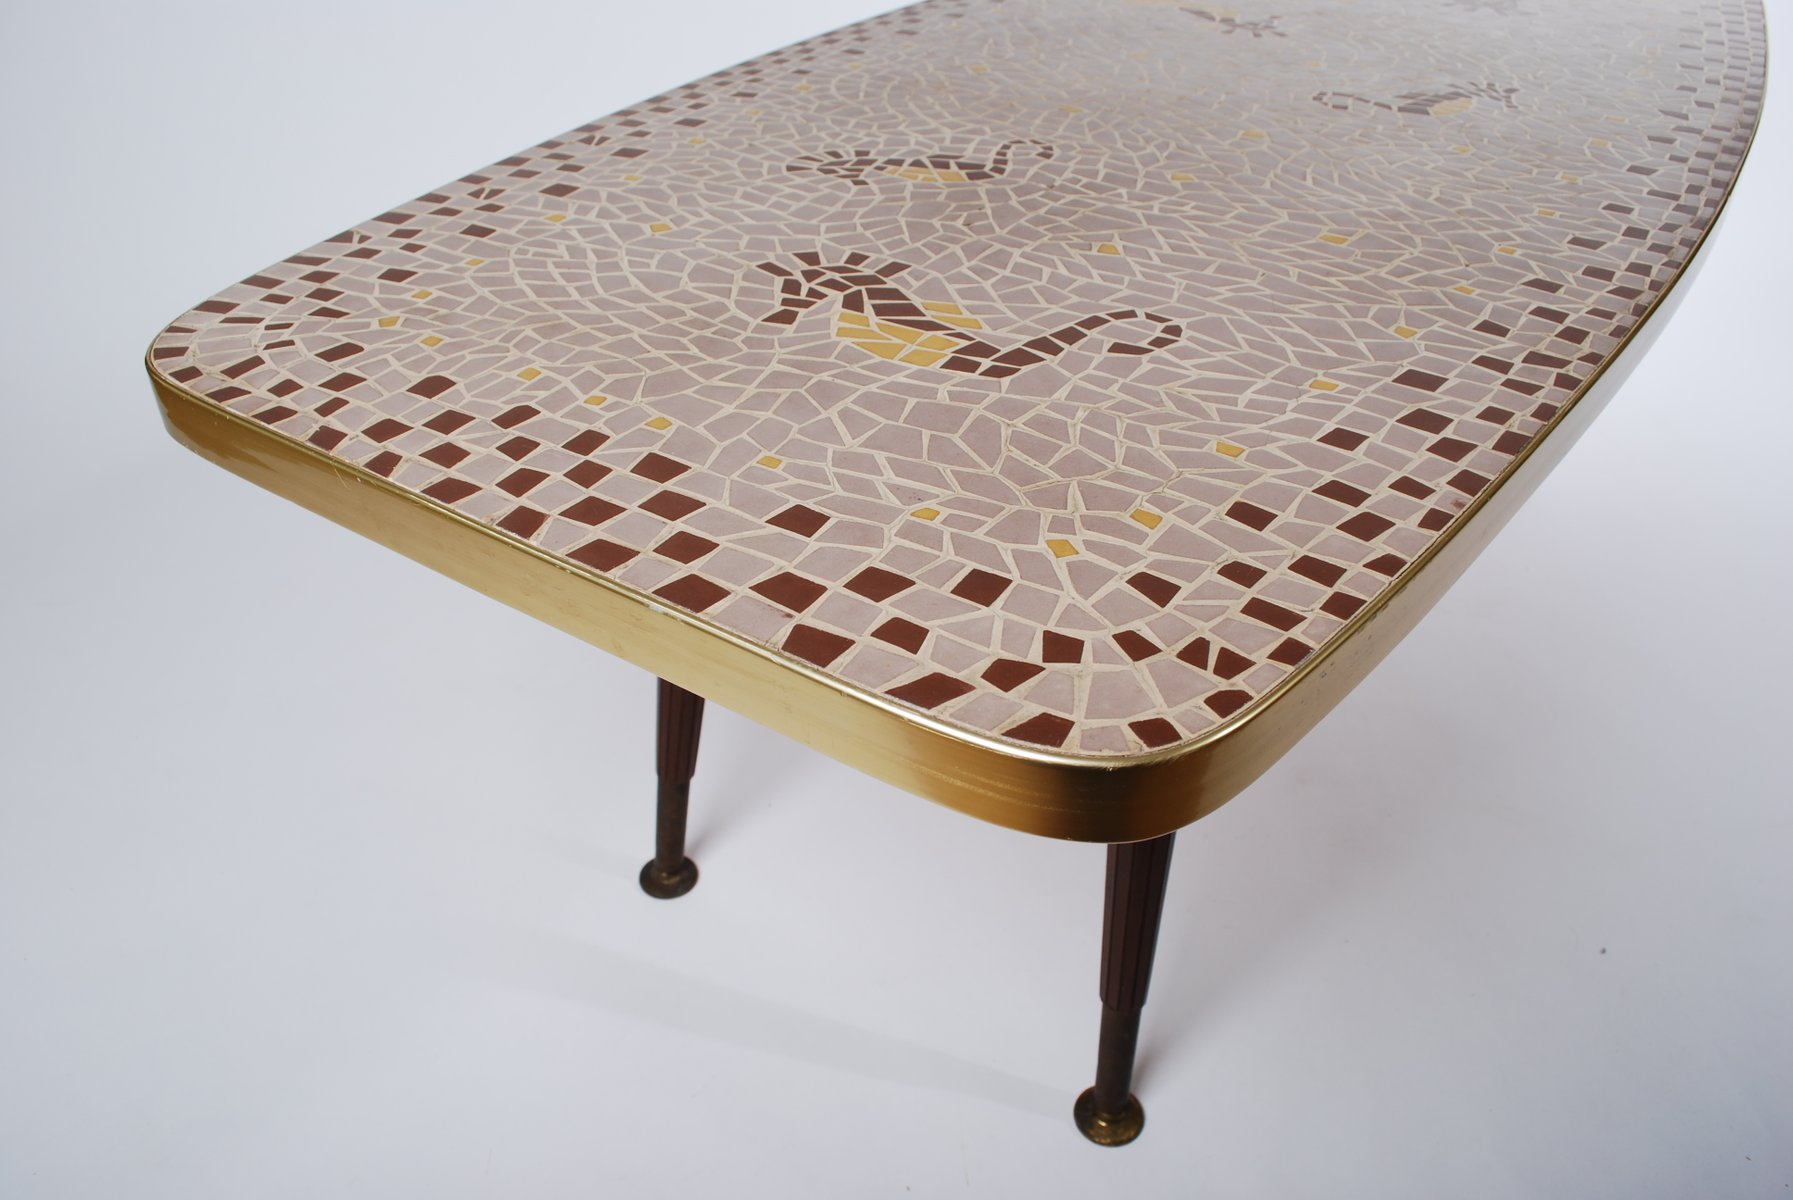 Vintage Mosaic Coffee Table 1950s for sale at Pamono